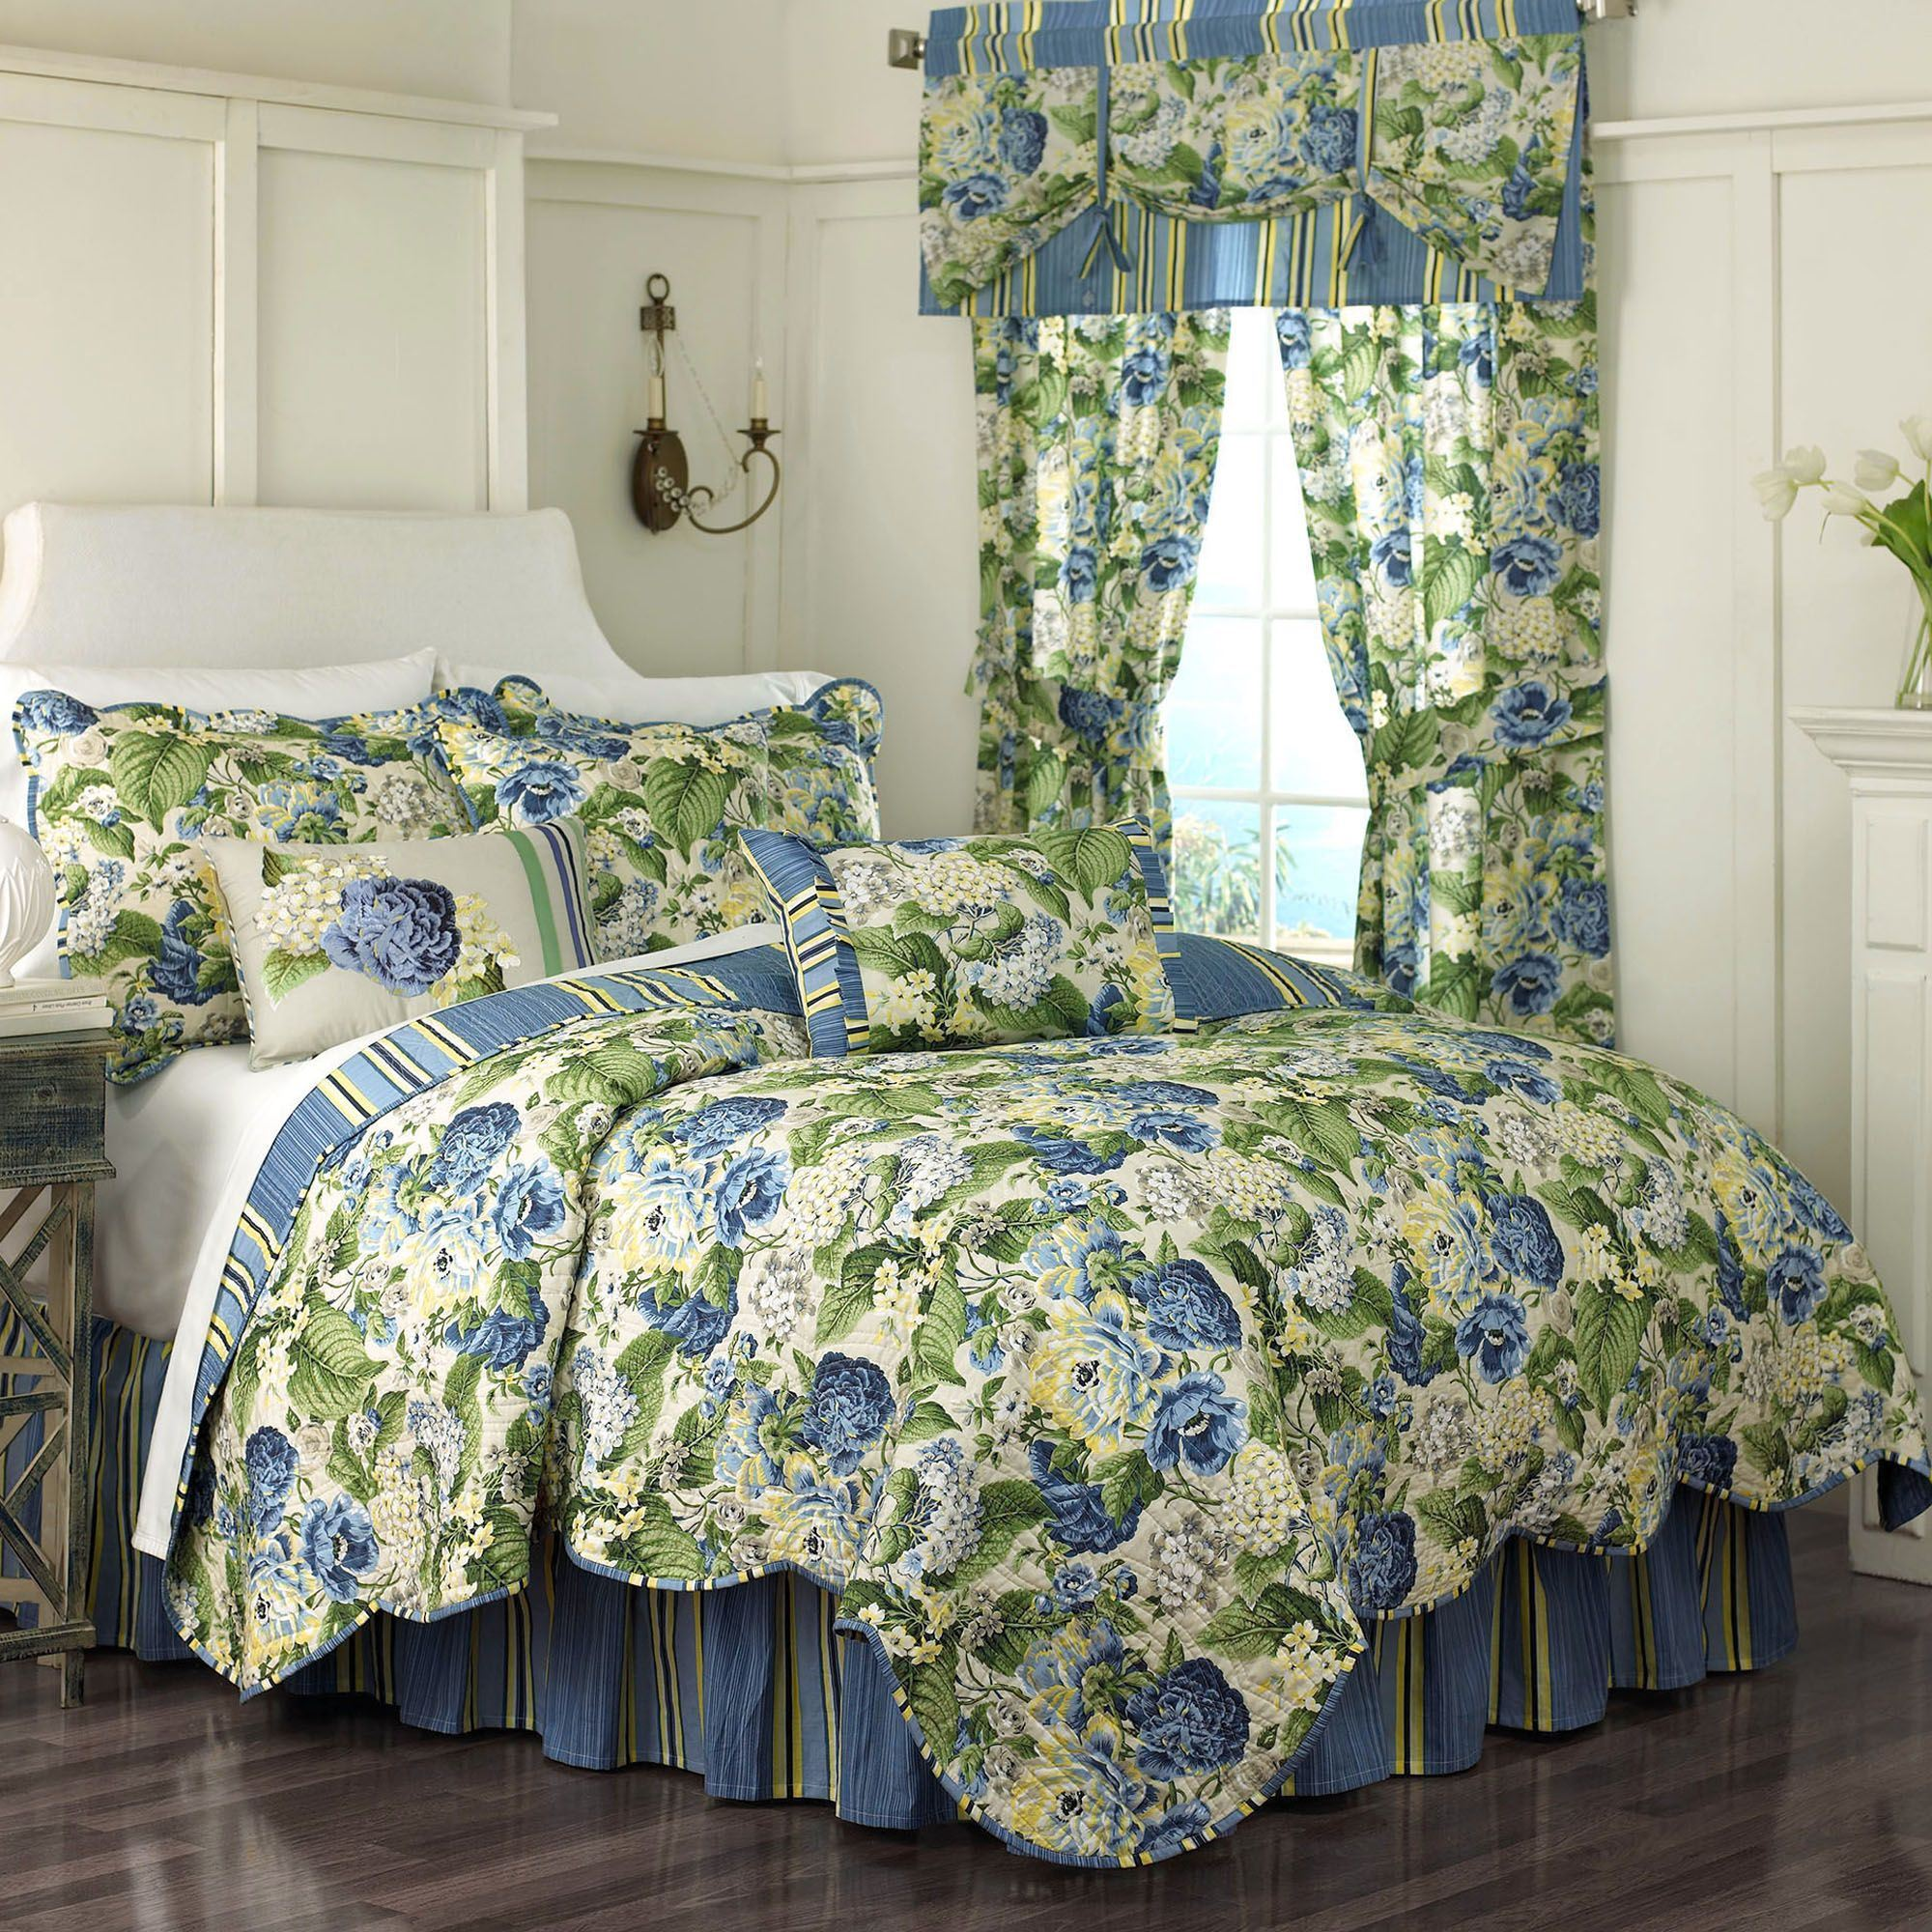 pinterest waverly ideas bedroom bedding image quilts pin quilt detail for